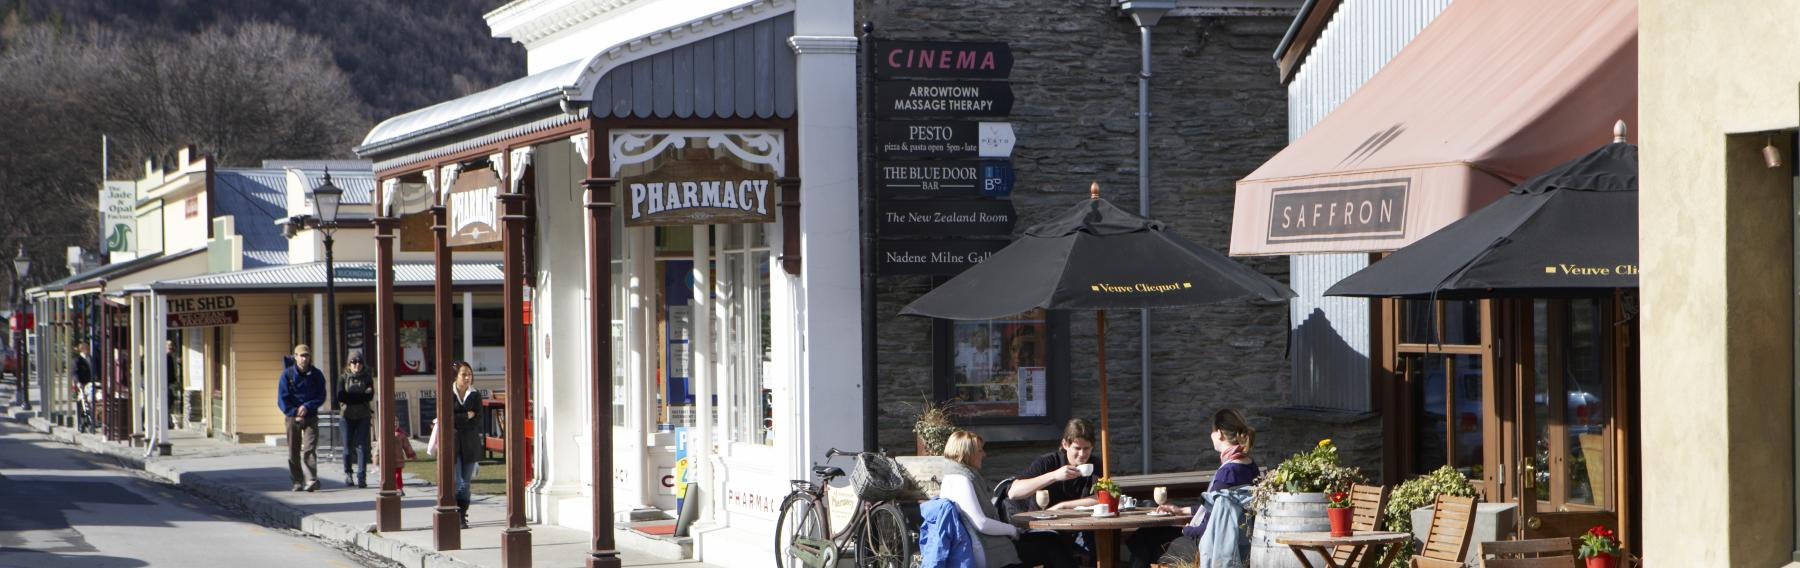 Restaurants and shops in Arrowtown